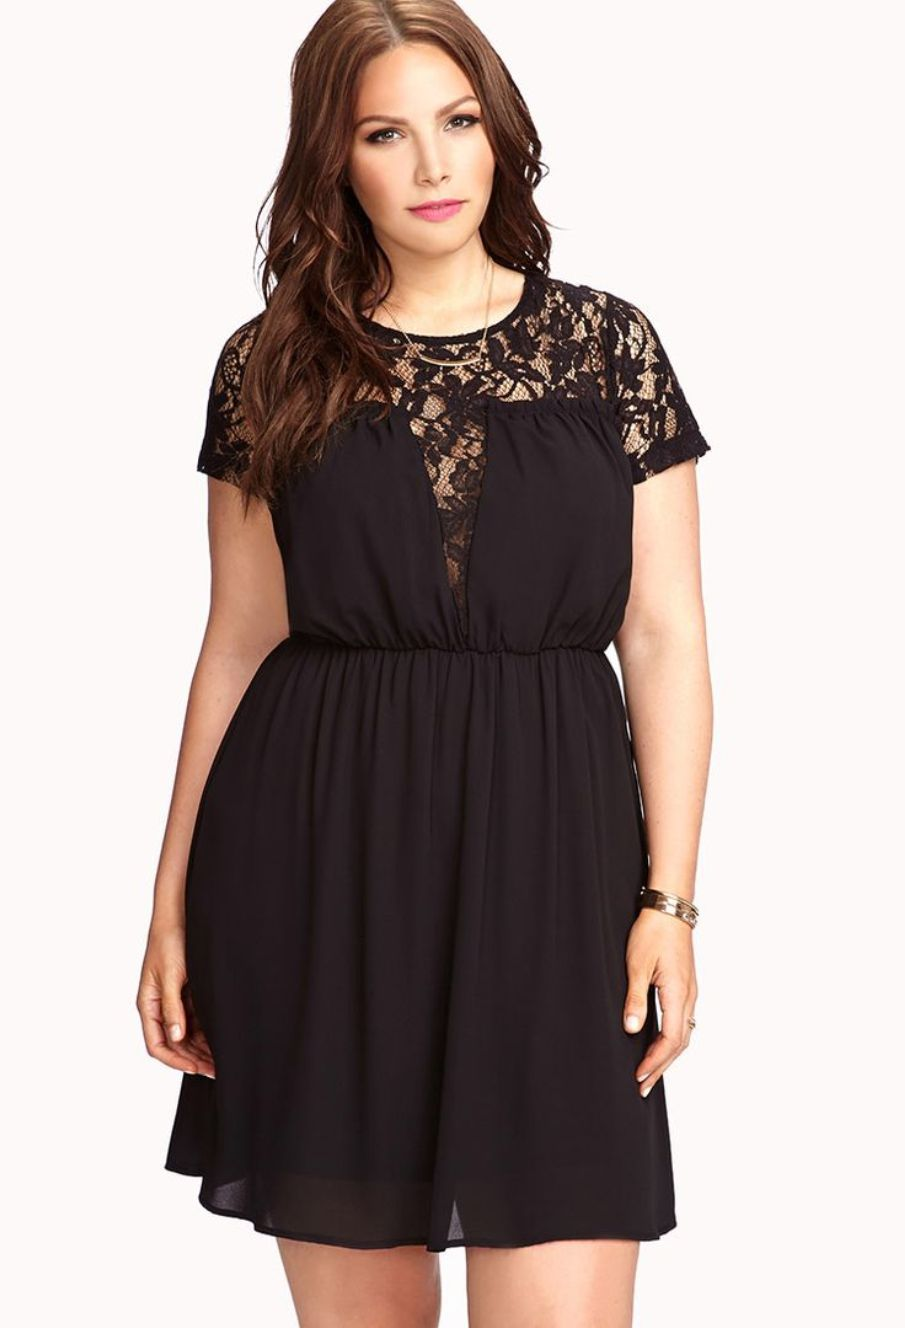 forever21 little black dress for plus size women lace style